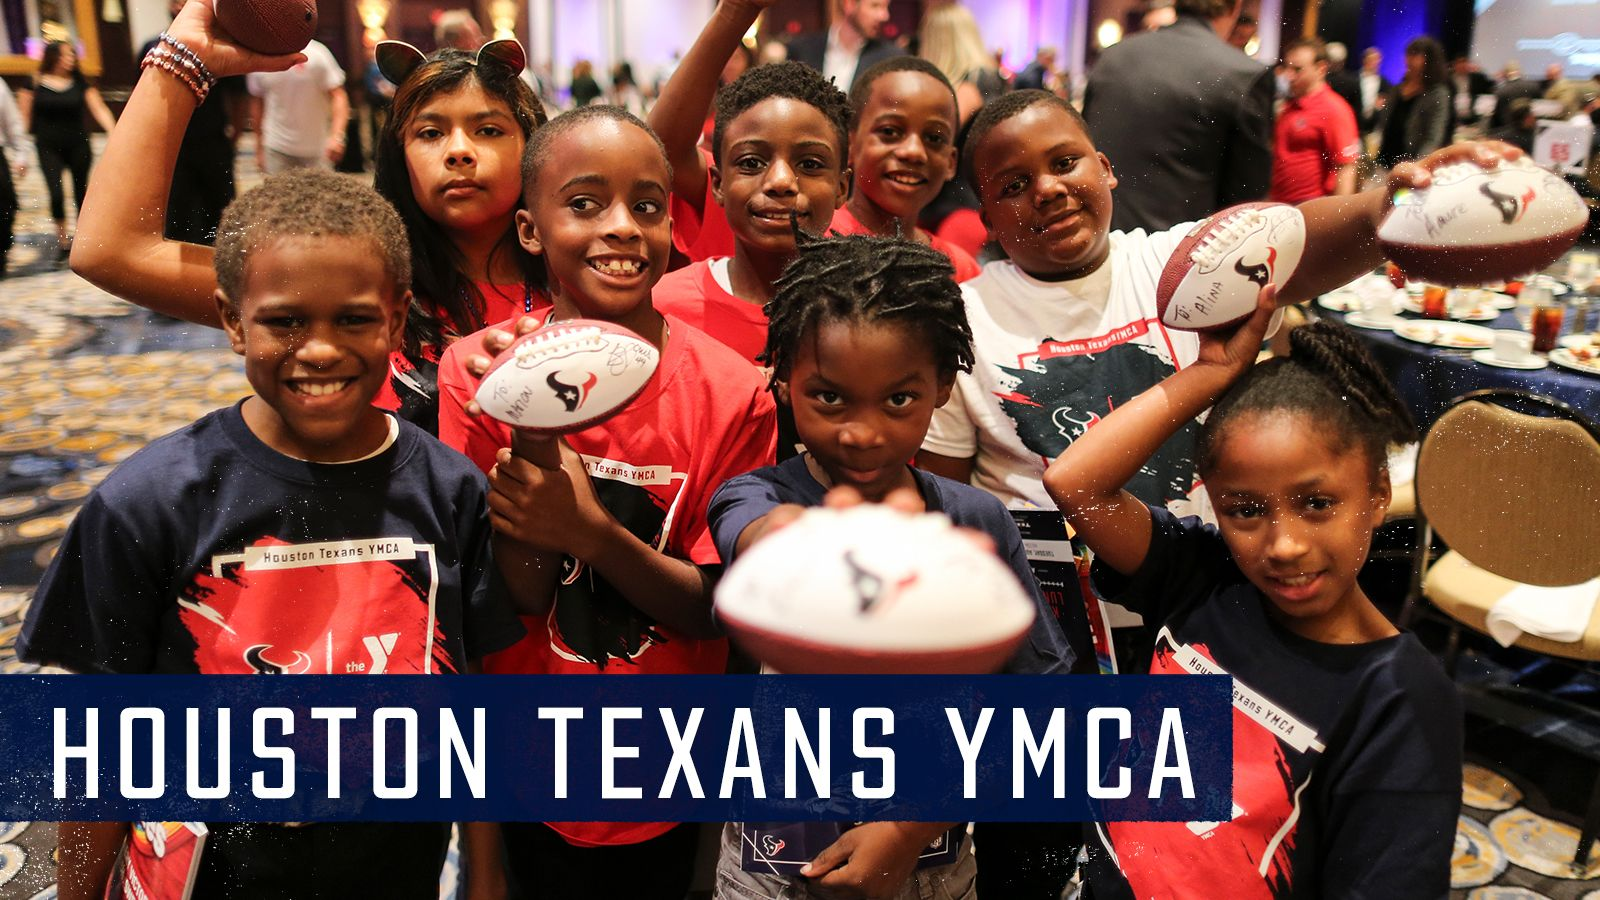 Houston Texans YMCA